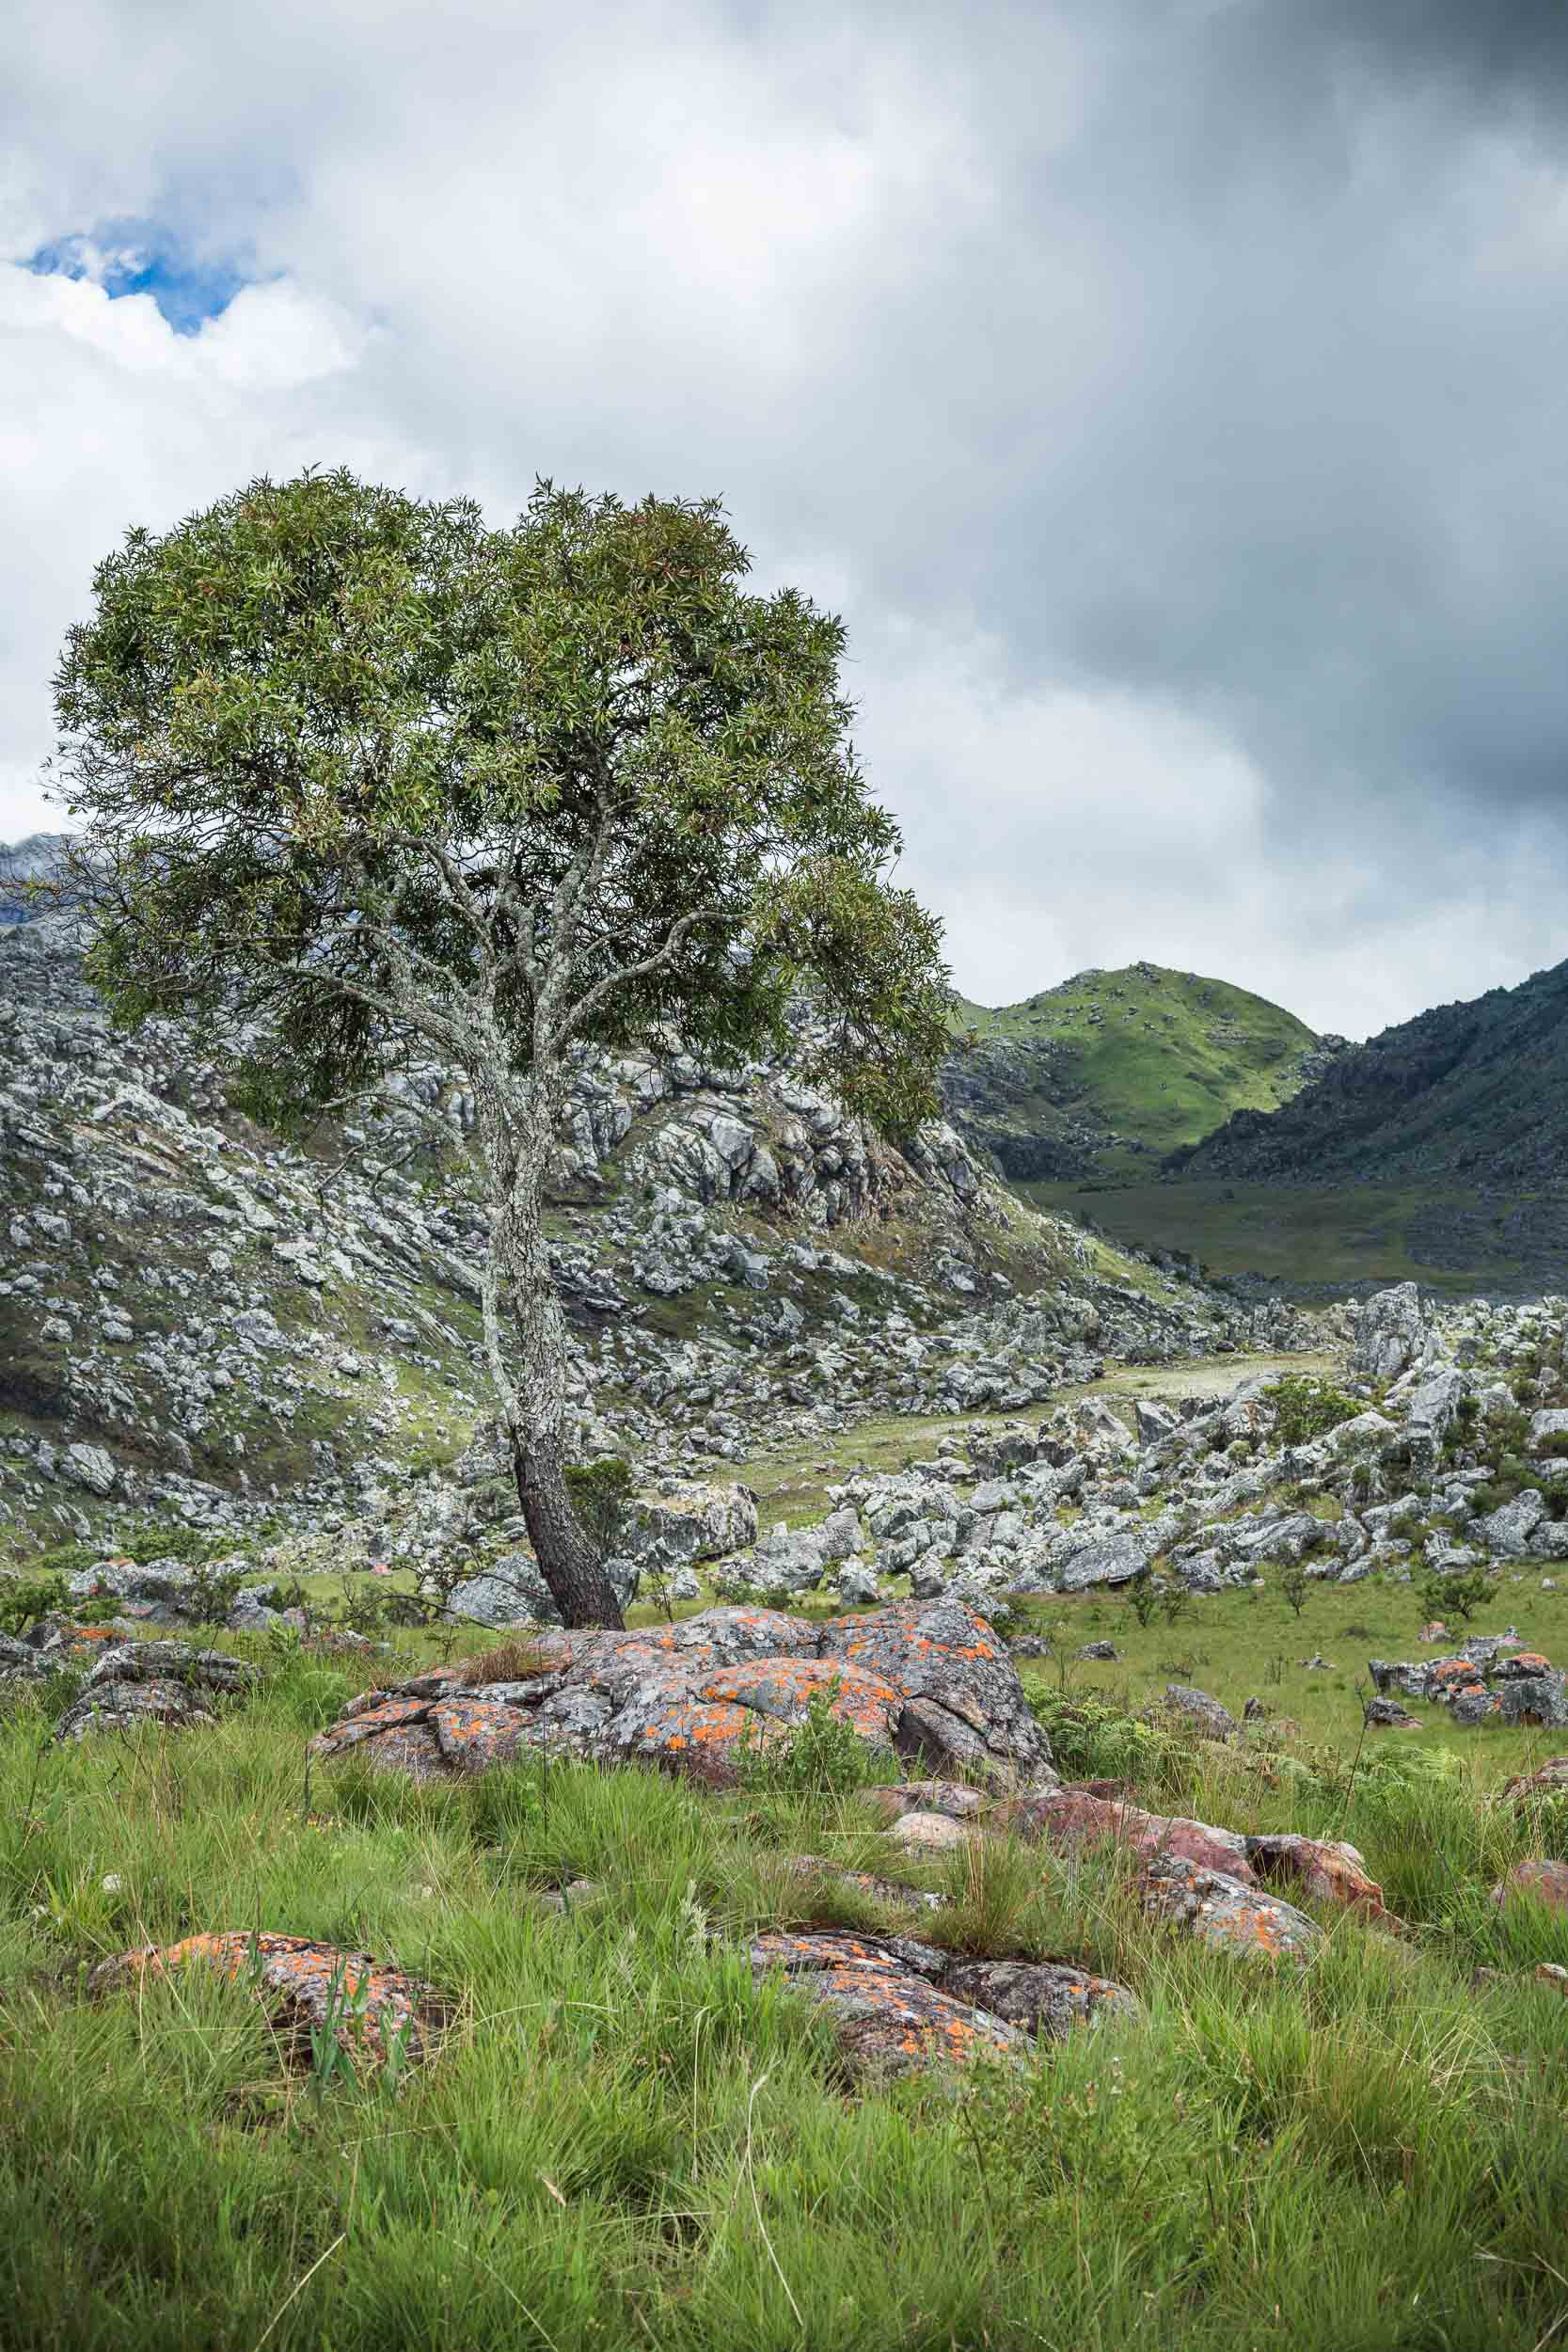 chimanimani-national-park-tree-boulder-field.jpg